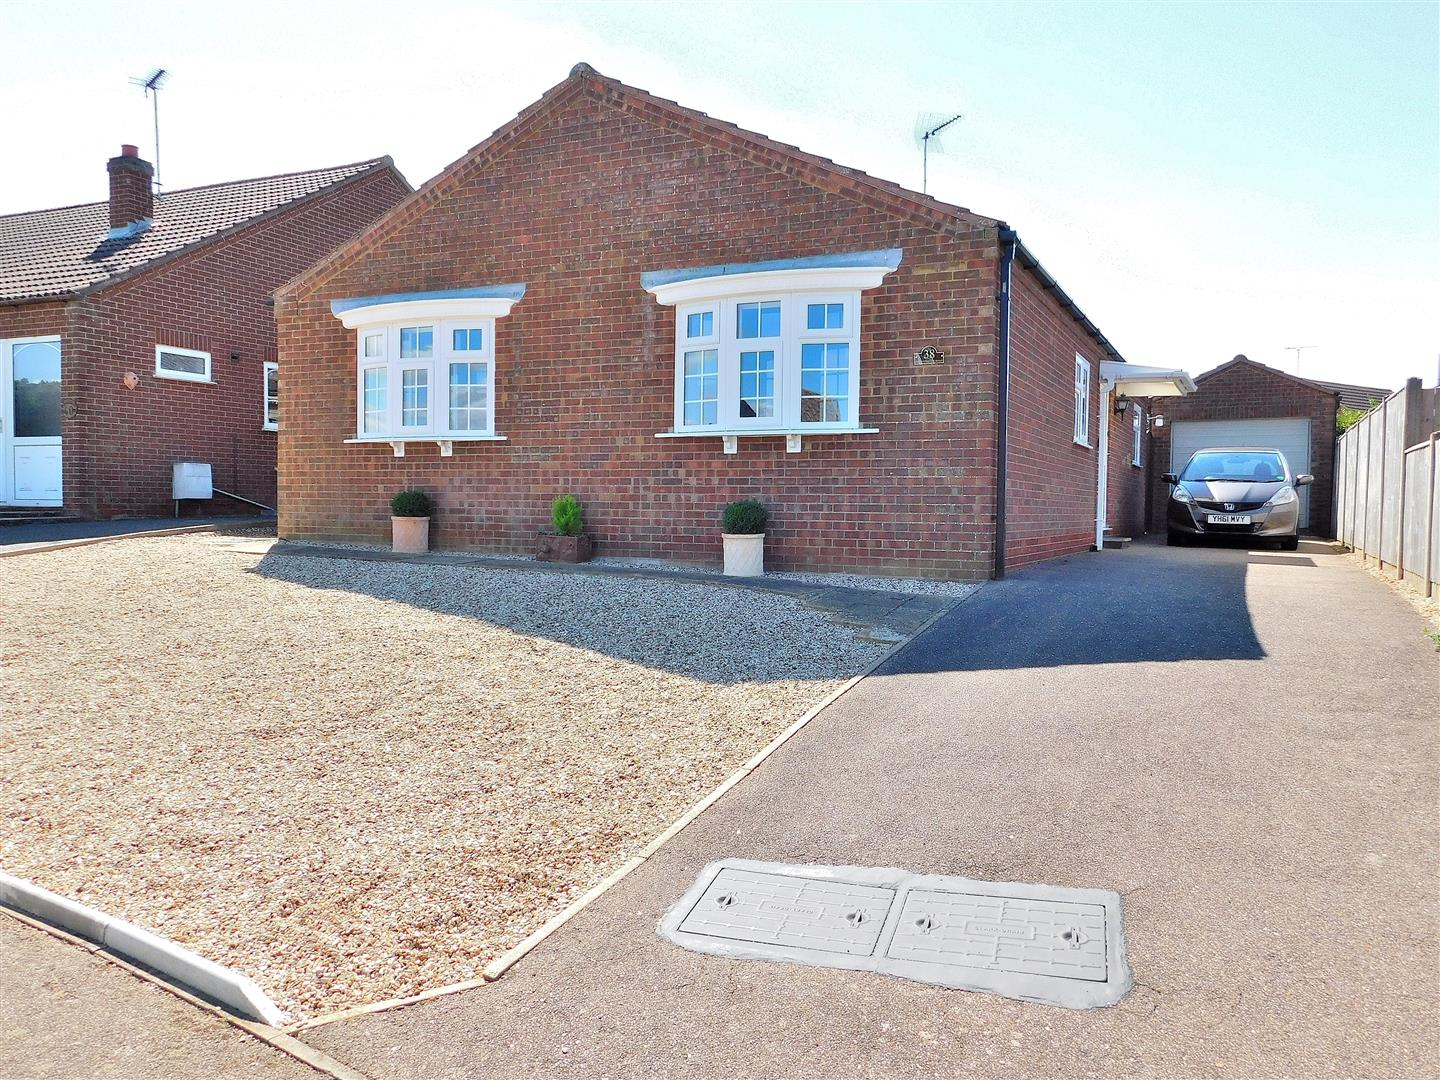 3 bed detached bungalow for sale in King's Lynn, PE31 6YE, PE31